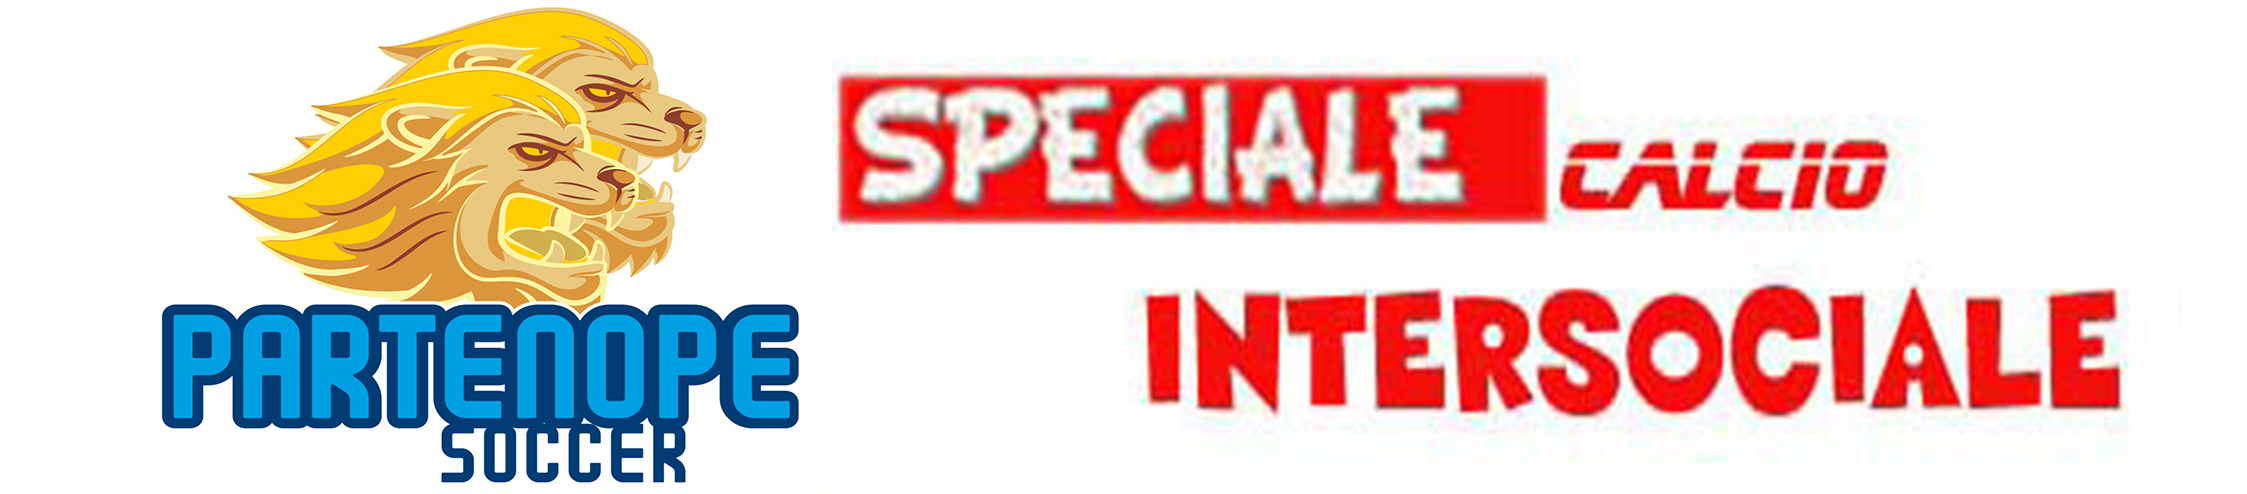 PARTENOPE SOCCER INTERSOCIALE